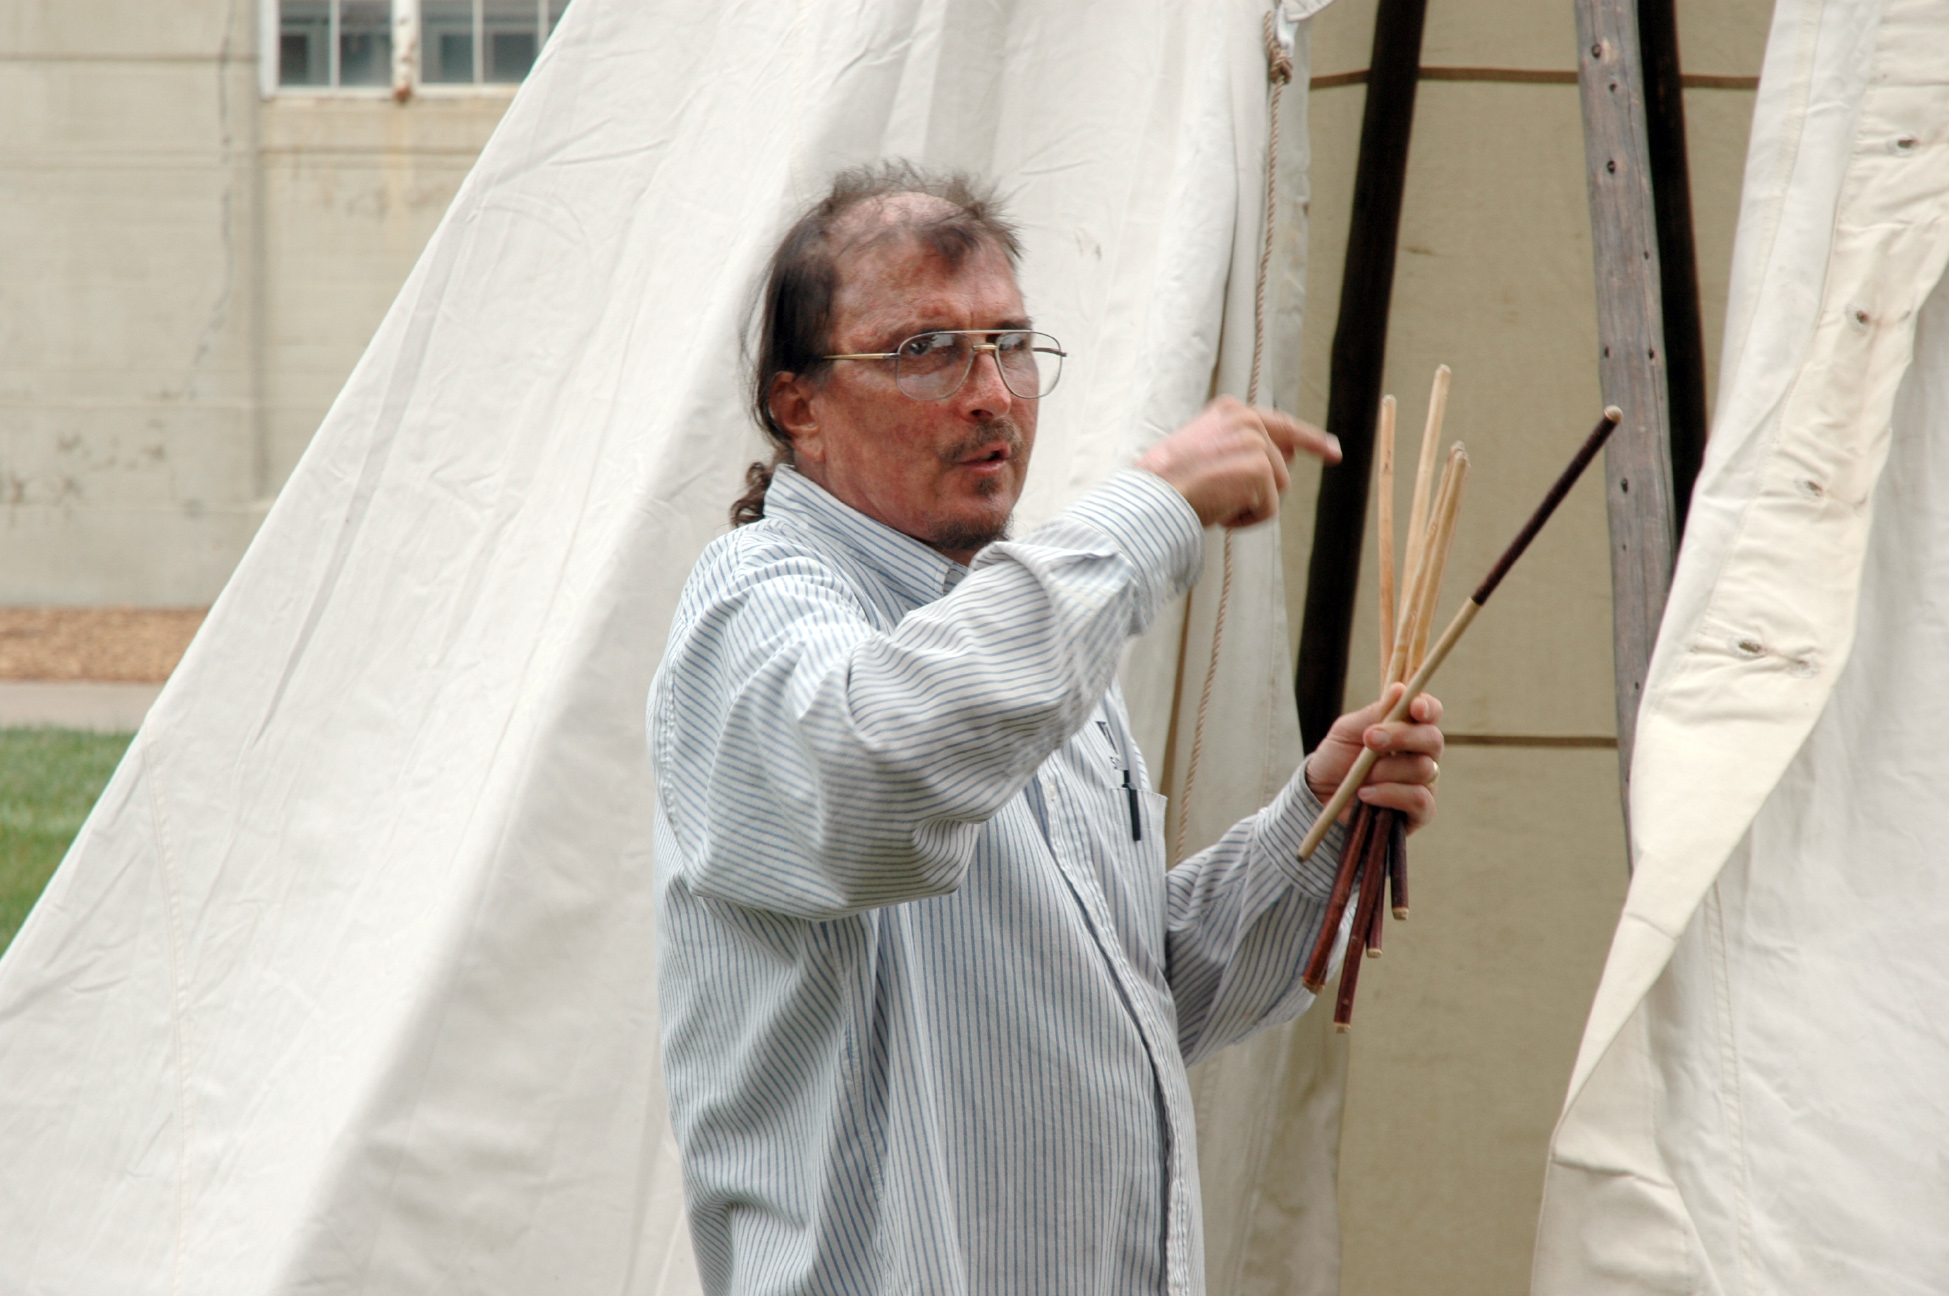 Mark Awakuni-Swetland describing the use of the chokecherry lacing pins for buttoning up the front of the tipi to his Omaha language class on the lawn east of Memorial Stadium in 2004.